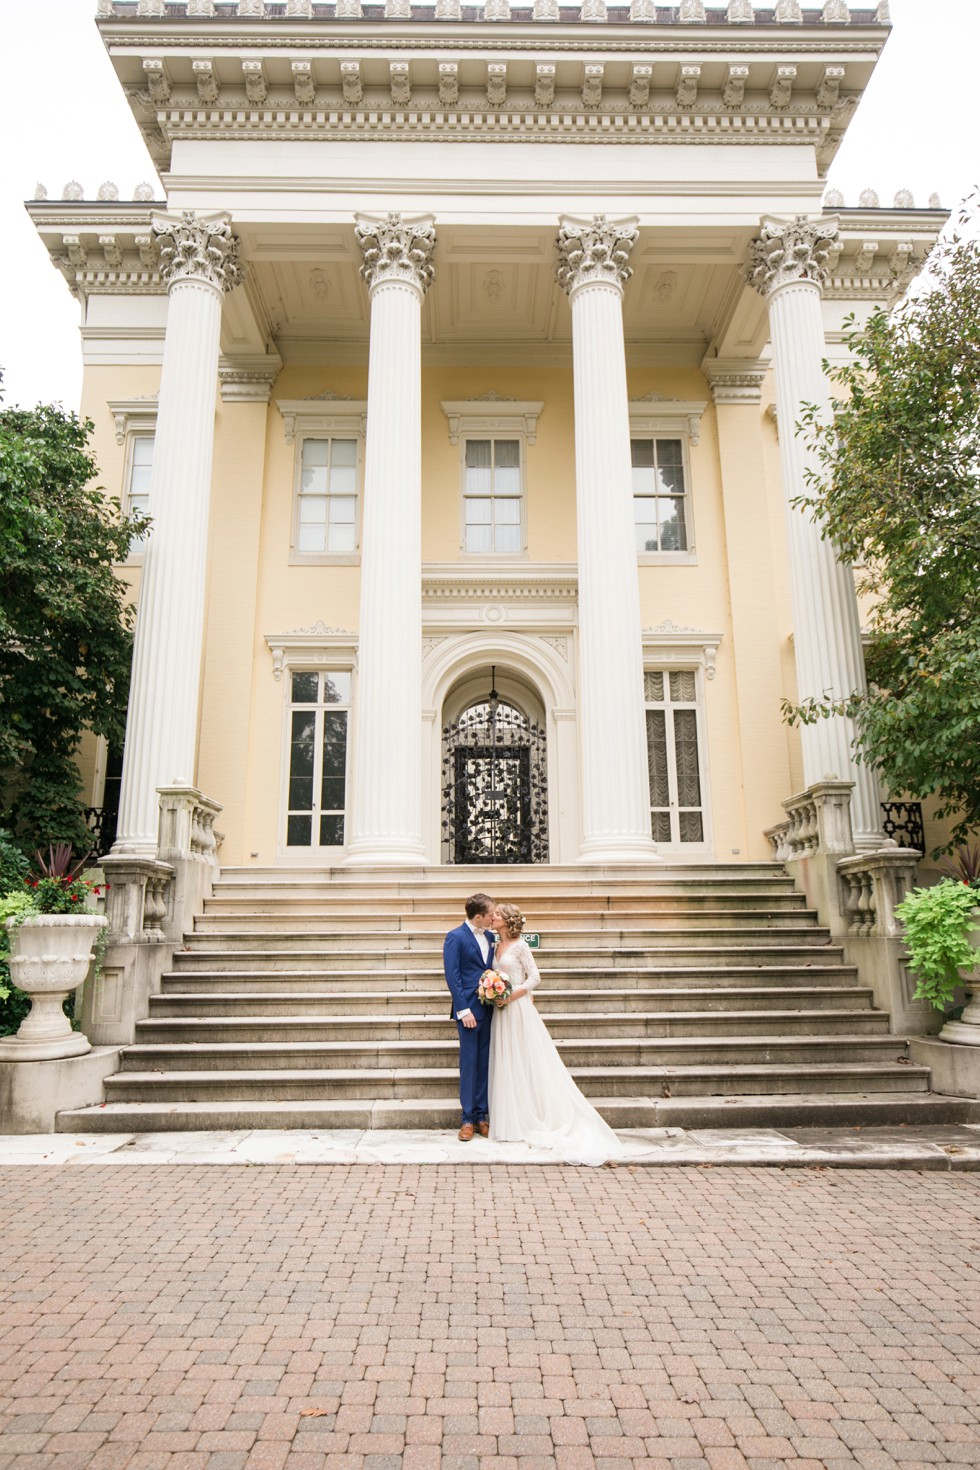 Evergreen Museum and Library wedding JHU events